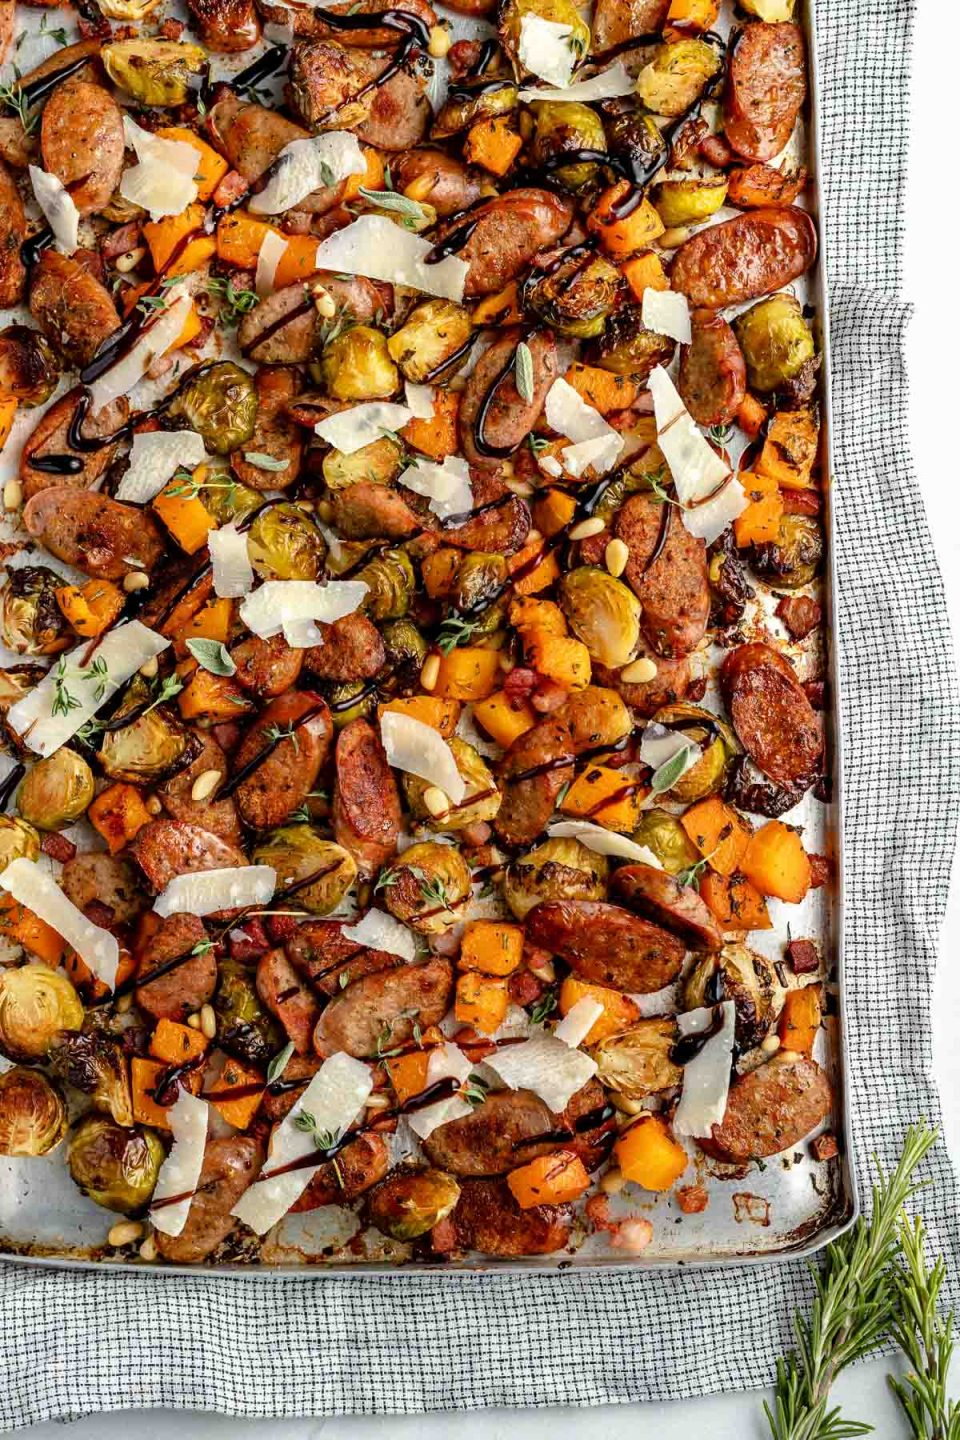 Sheet pan chicken sausage & vegetables. Thinly sliced chicken sausage, diced butternut squash, & halved brussels sprouts are browned & roasty on a large sheet pan, & topped with grated parmesan & a drizzle of balsamic glaze. The chicken sausage sheet pan sits atop a light blue surface with a striped linen napkin.